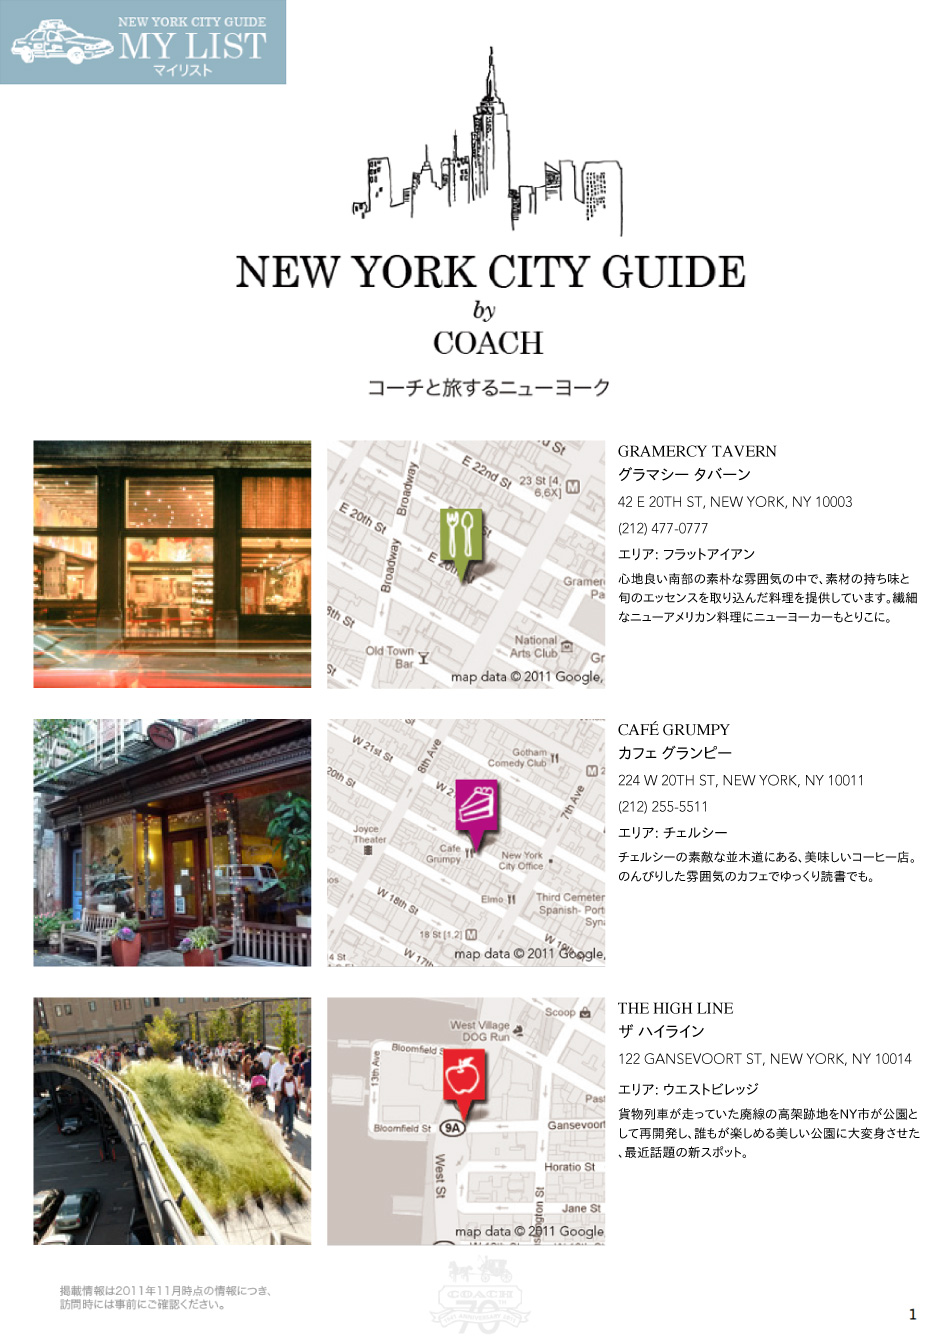 nyc_guide_7